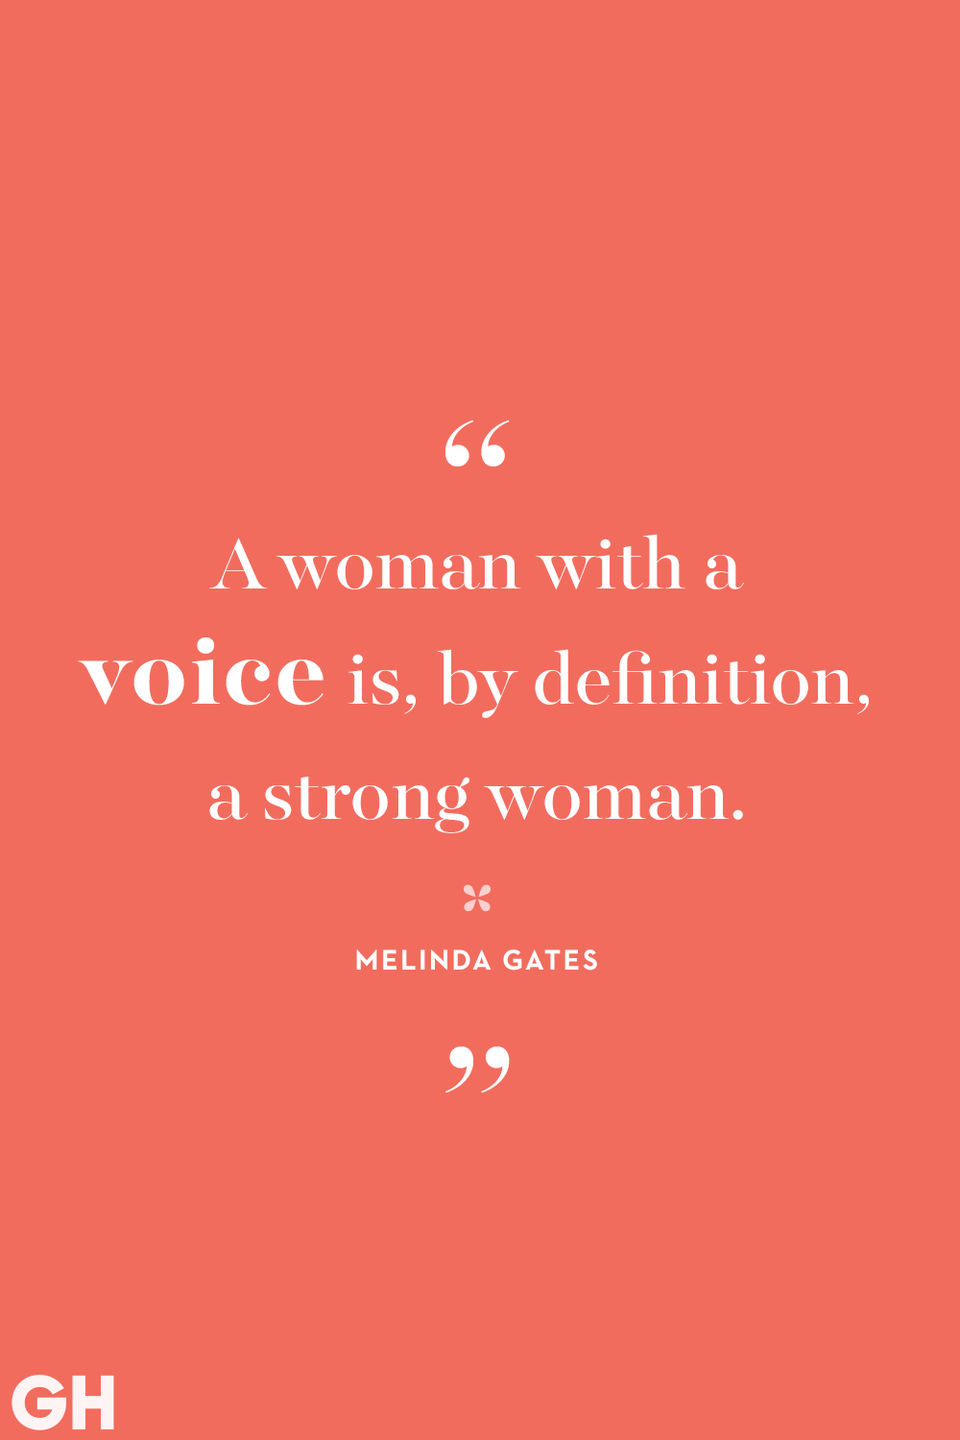 <p>A woman with a voice is, by definition, a strong woman.</p>